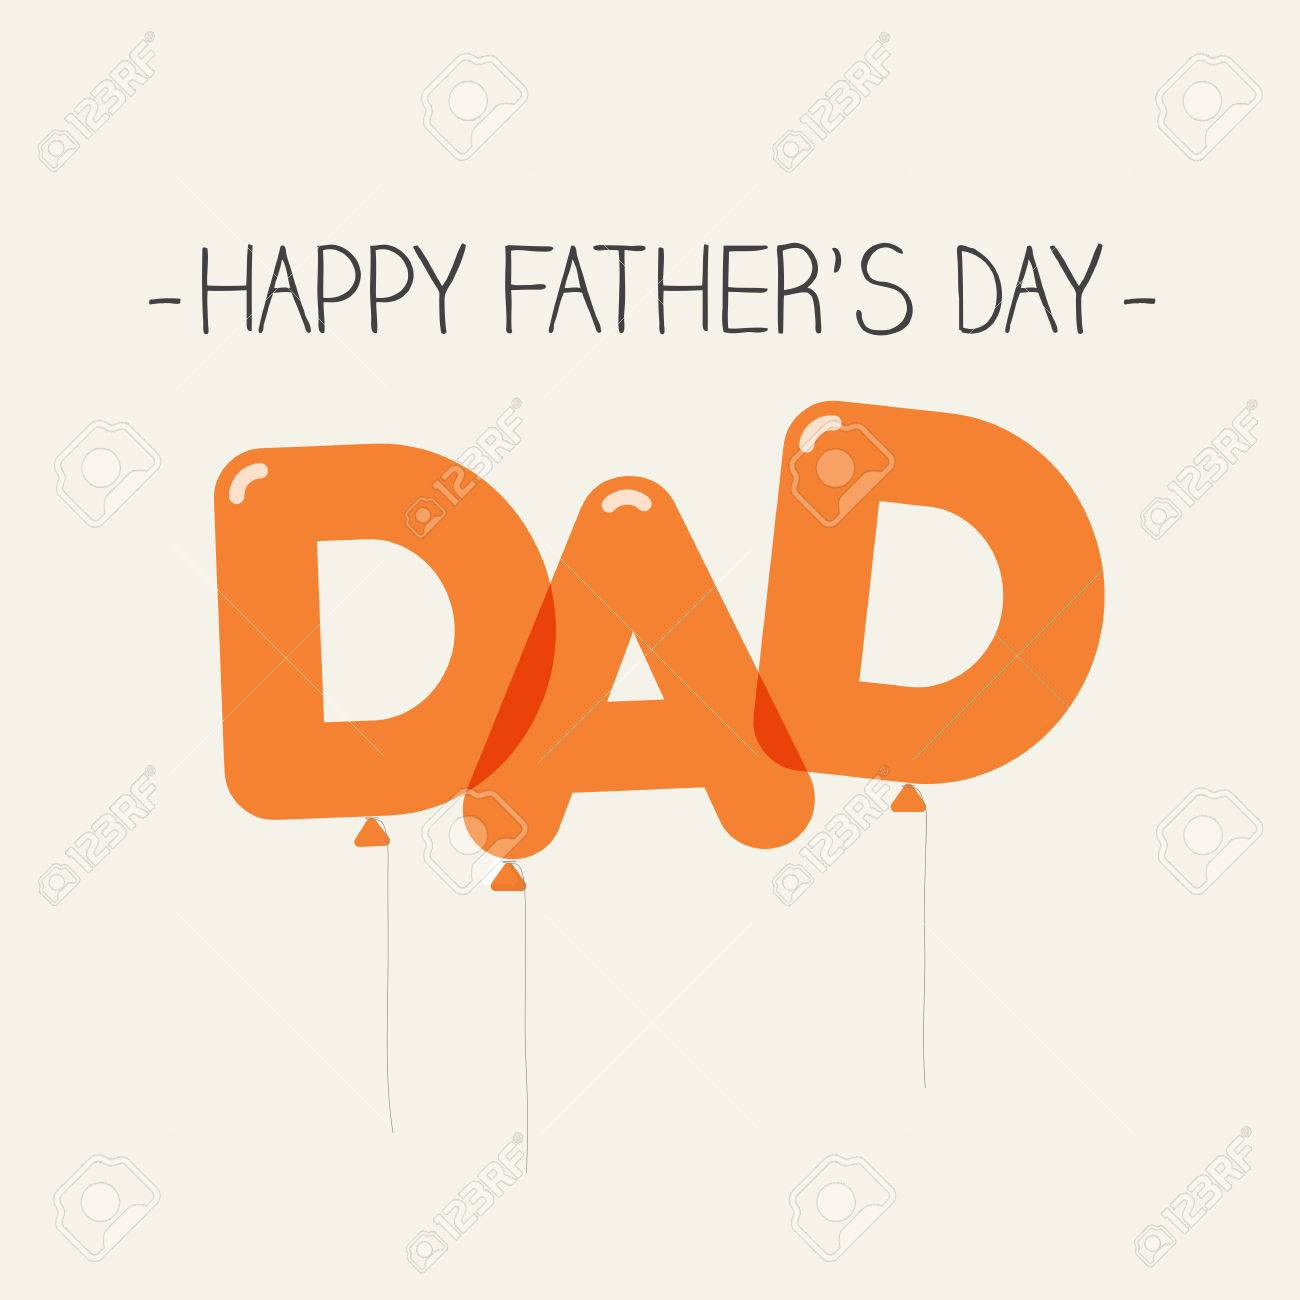 happy fathers day card dad balloons type editable vector design stock vector